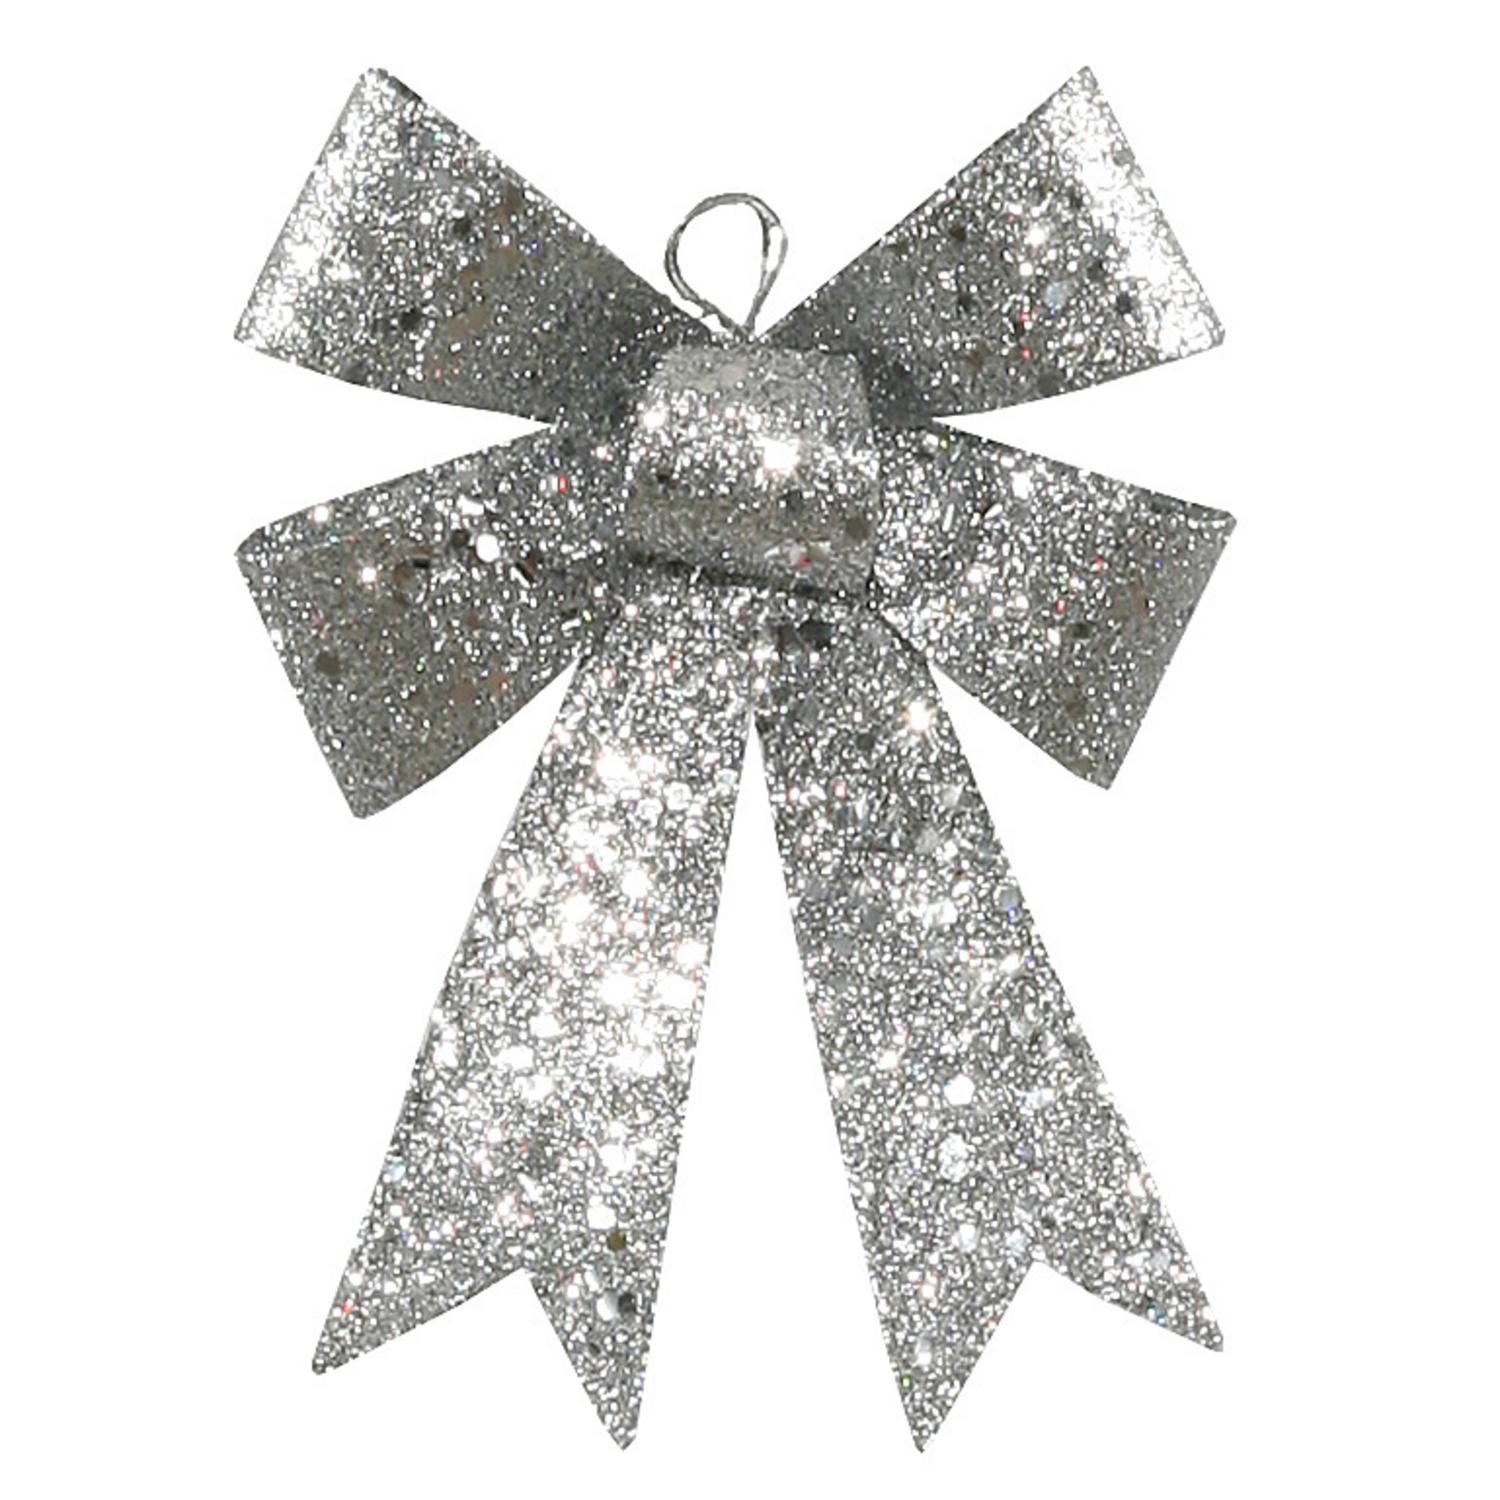 "5"" Silver Sequin and Glitter Bow Christmas Ornament ..."